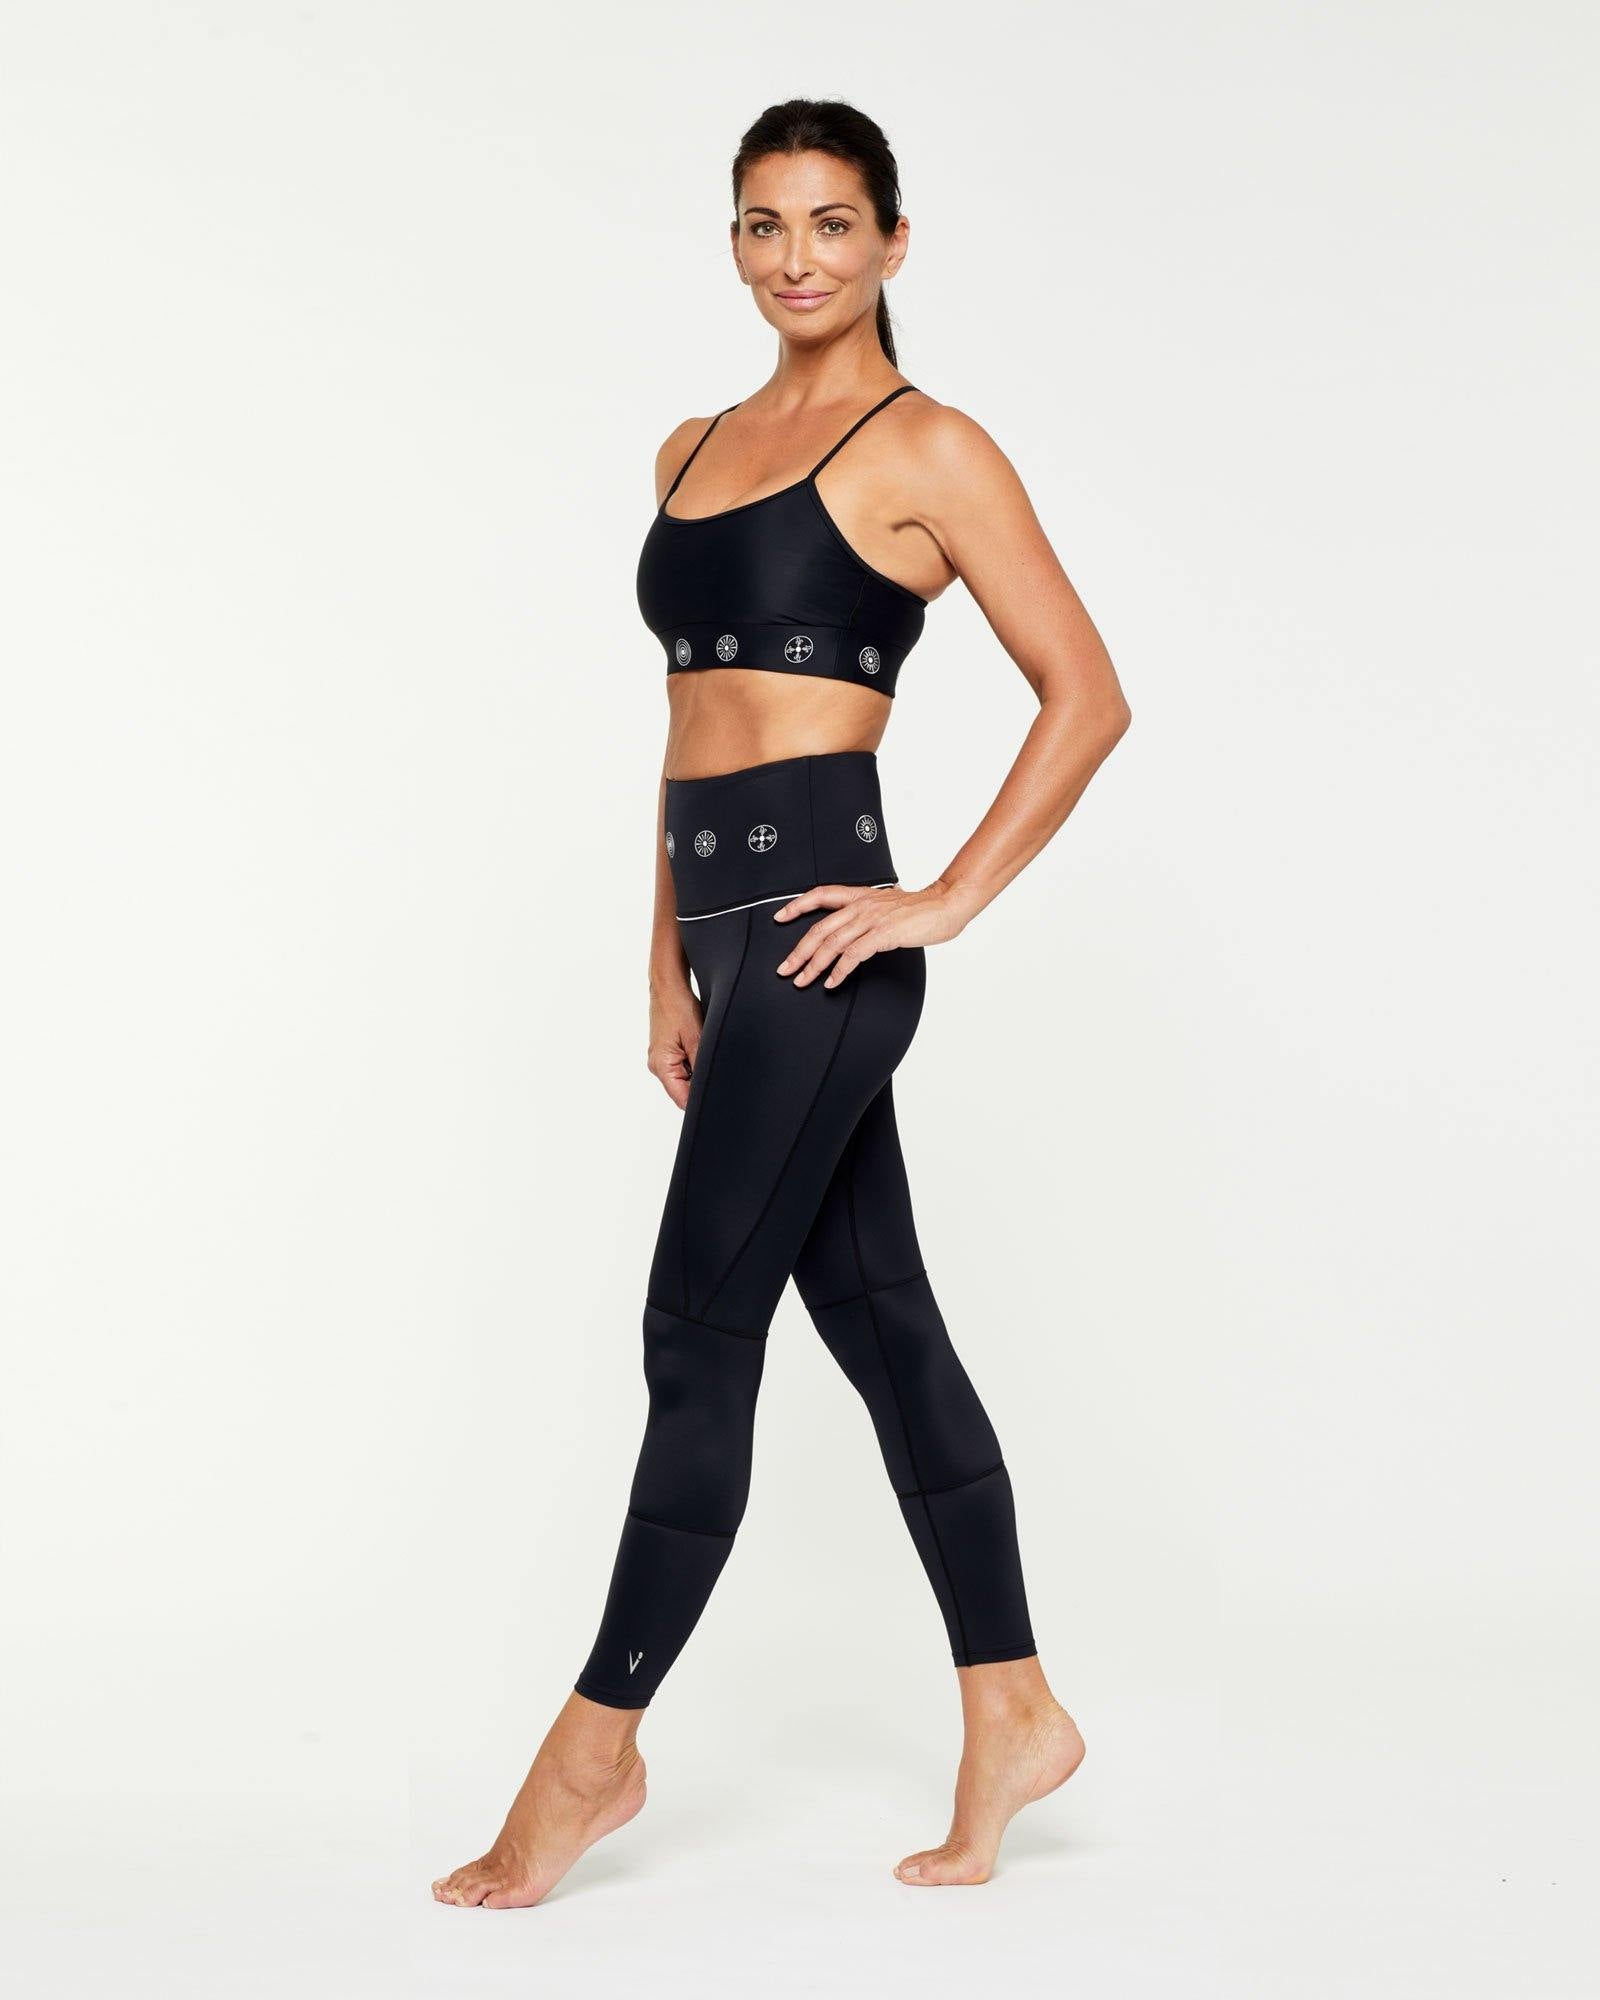 Companion GRACILIS 7/8 LEGGING BLACK WITH WHITE SYMBOLS WORN WITH INFRASPINATUS bra top, SIDE VIEW